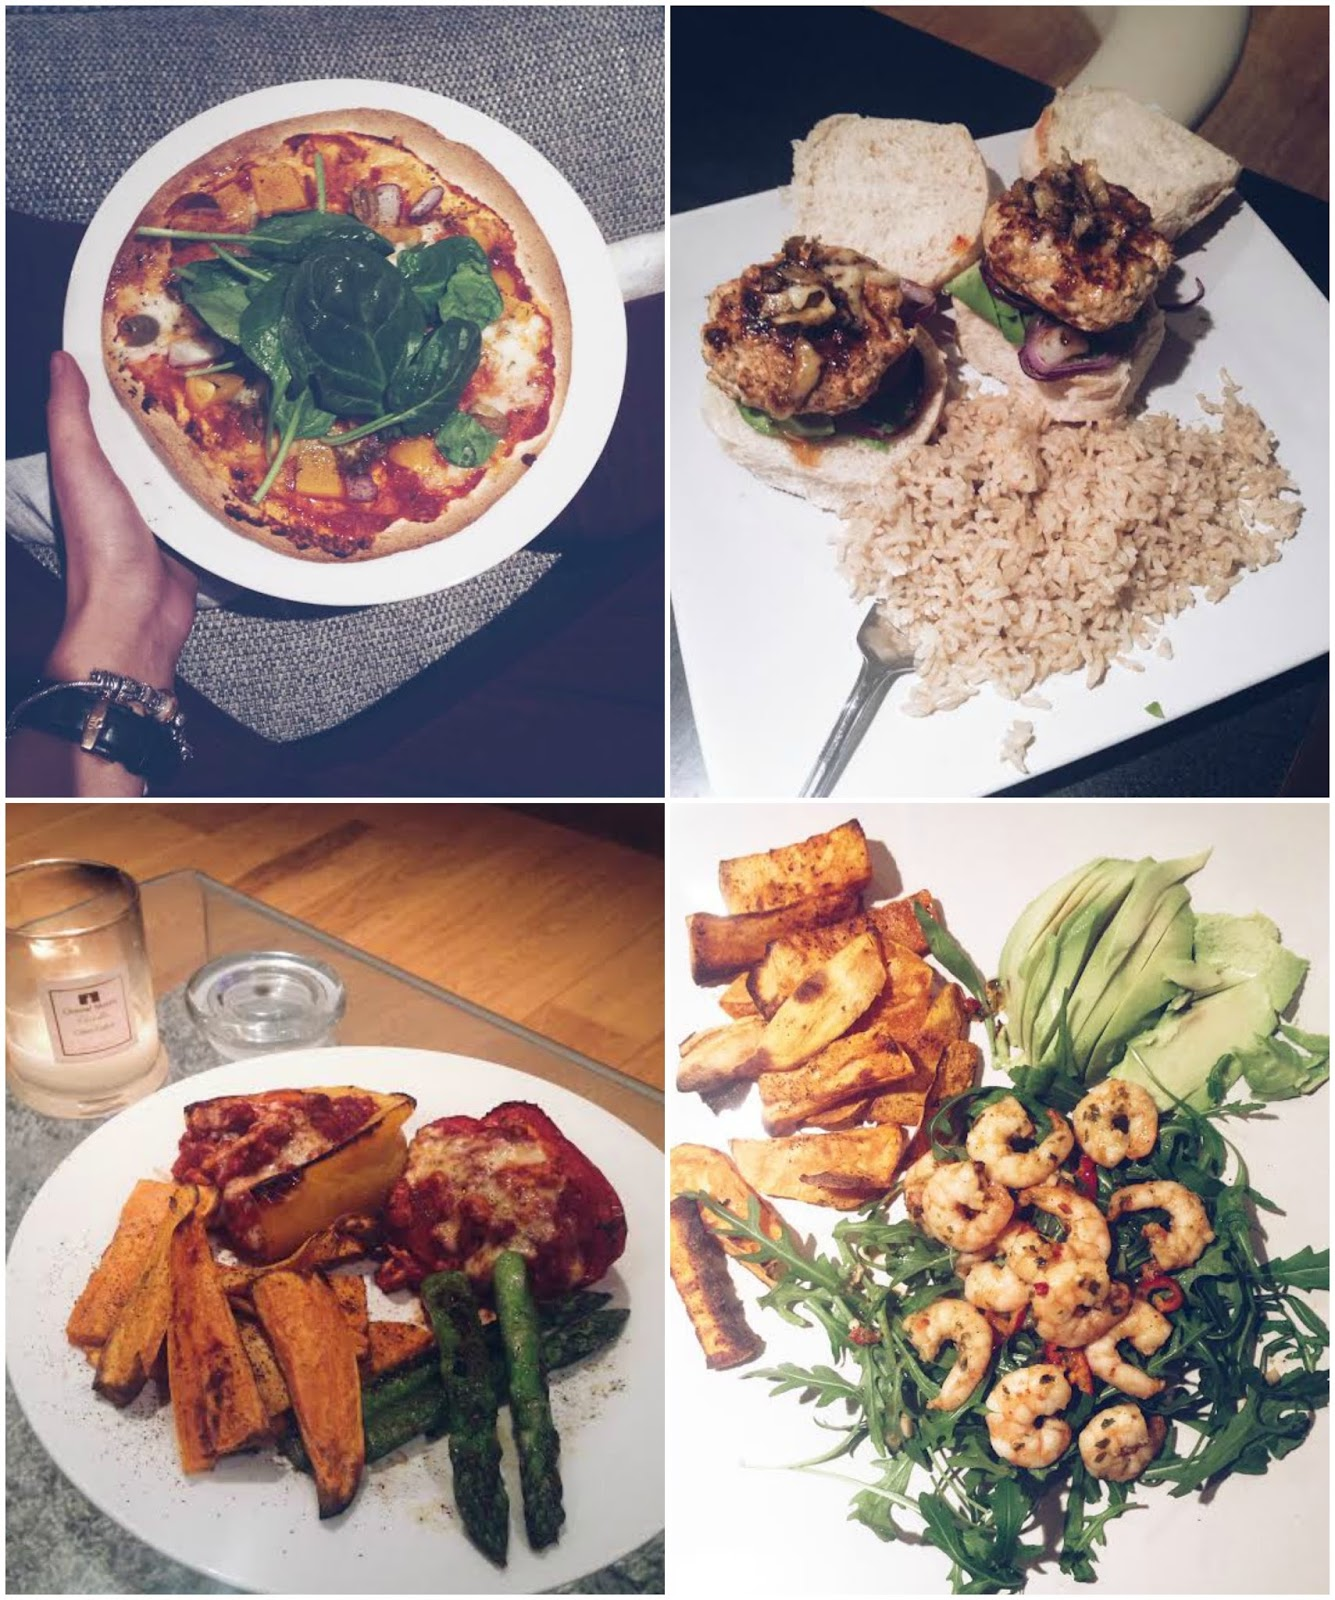 Healthy Meal Ideas, Four Healthy Recipes, Low Calorie Meals, Healthy Dinner Ideas, Turkey Stuffed Pepper, Homemade Tortilla Pizza, Turkey Burgers, Garlic and Chilli prawns